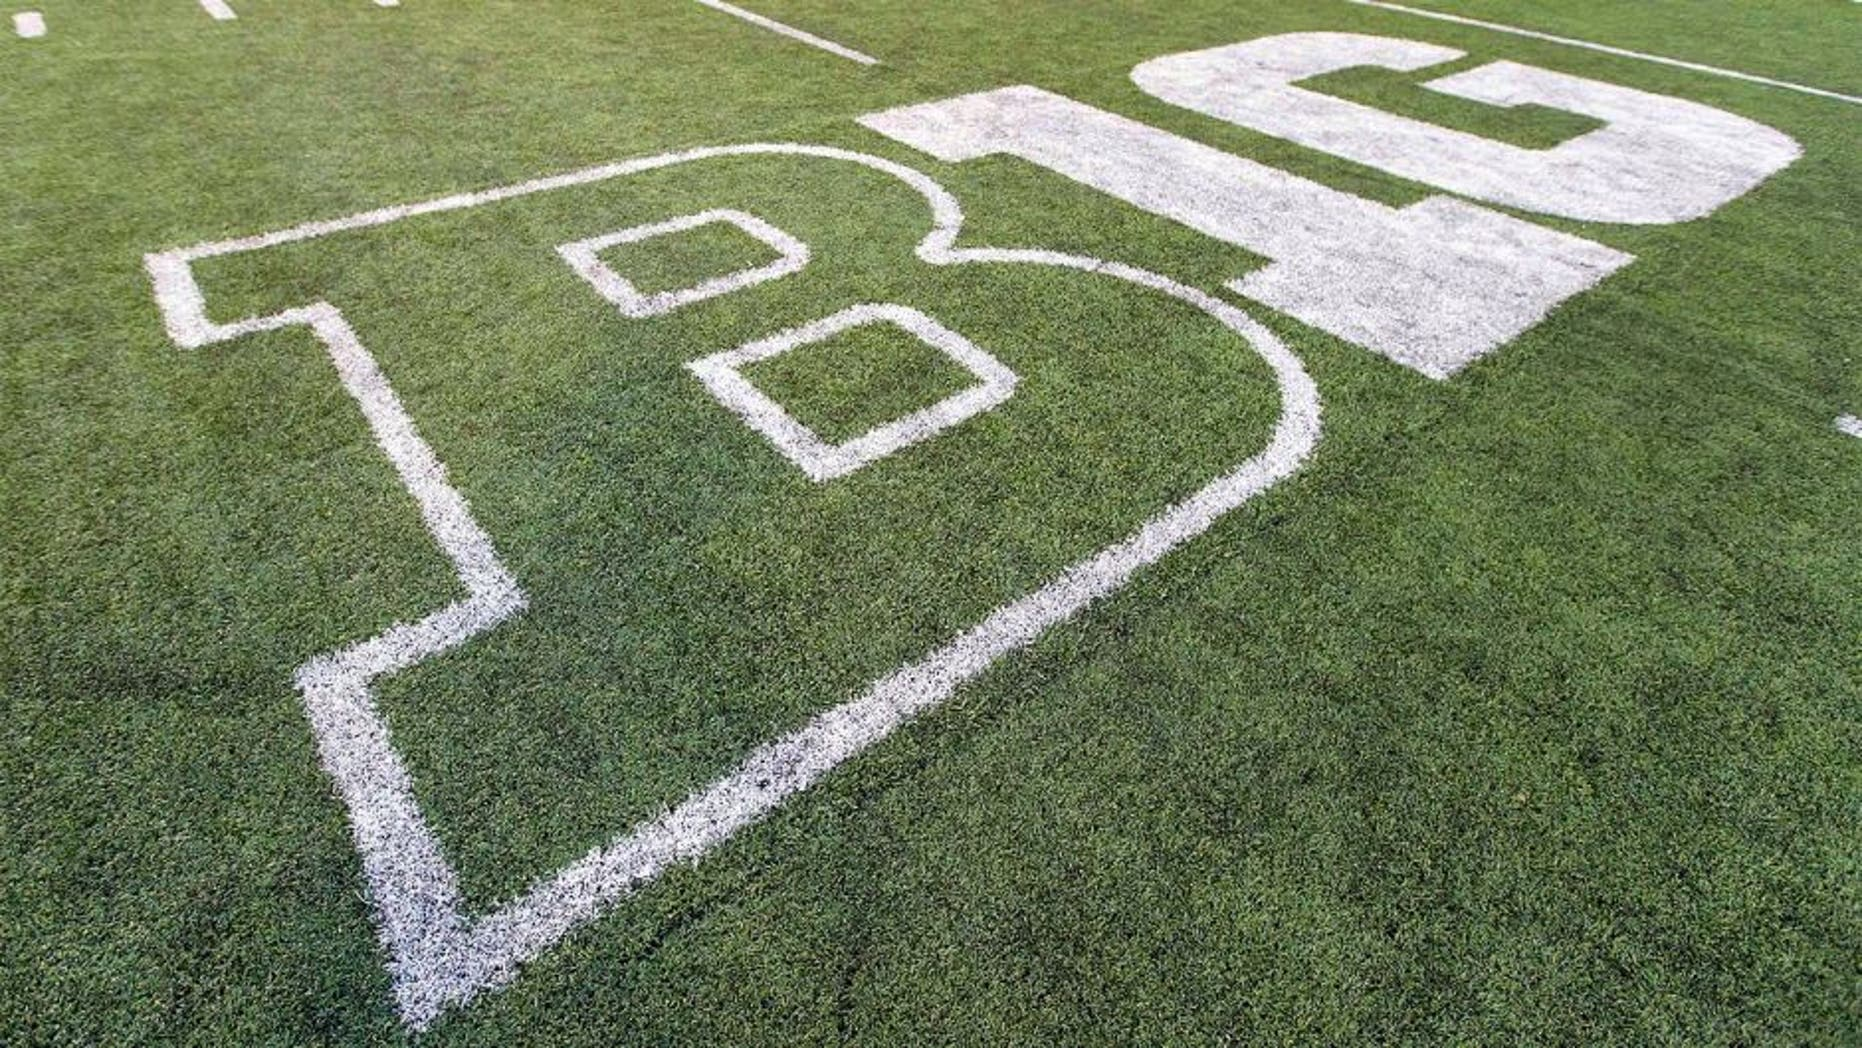 Oct 12, 2013; Madison, WI, USA; The Big Ten logo on the field at Camp Randall Stadium following the game between the Northwestern Wildcats and Wisconsin Badgers. Wisconsin won 35-6. Mandatory Credit: Jeff Hanisch-USA TODAY Sports